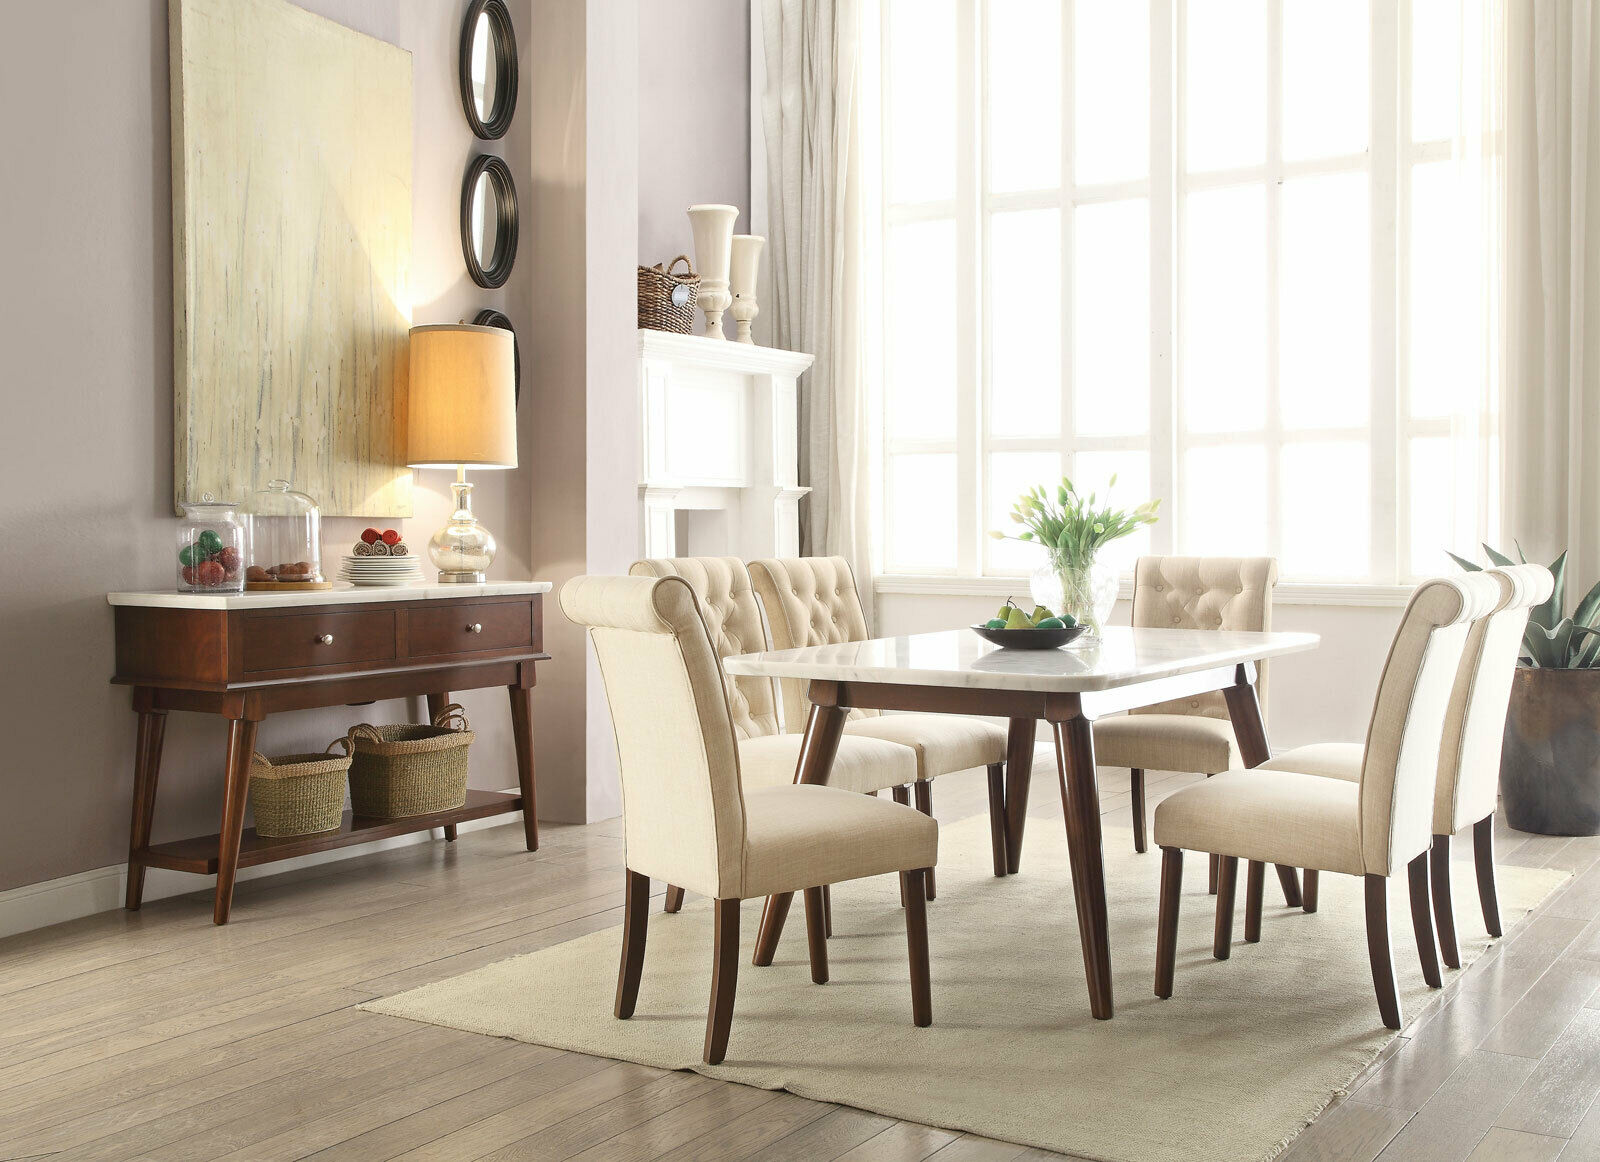 Modern Brown 7 Pieces Dining Room Set Rectangular White Marble Table Chairs Iacq For Sale Online